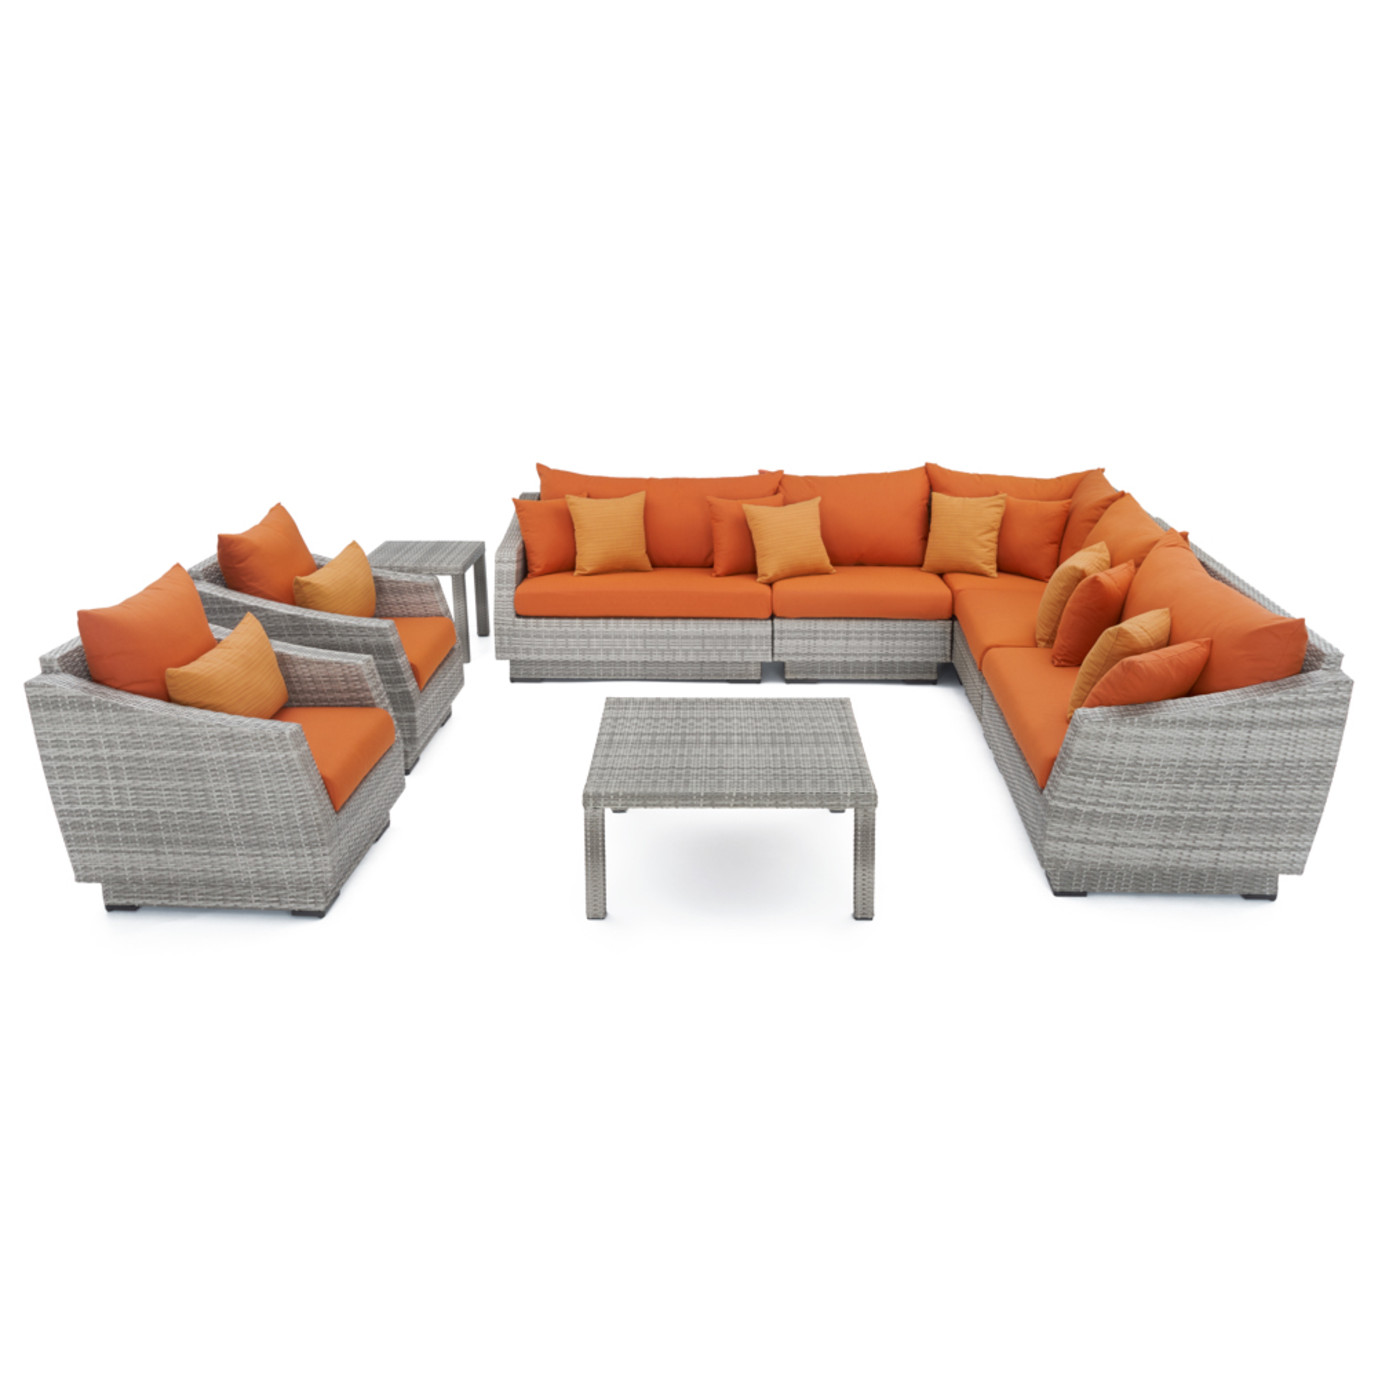 Cannes™ 9 Piece Sectional and Table - Tikka Orange